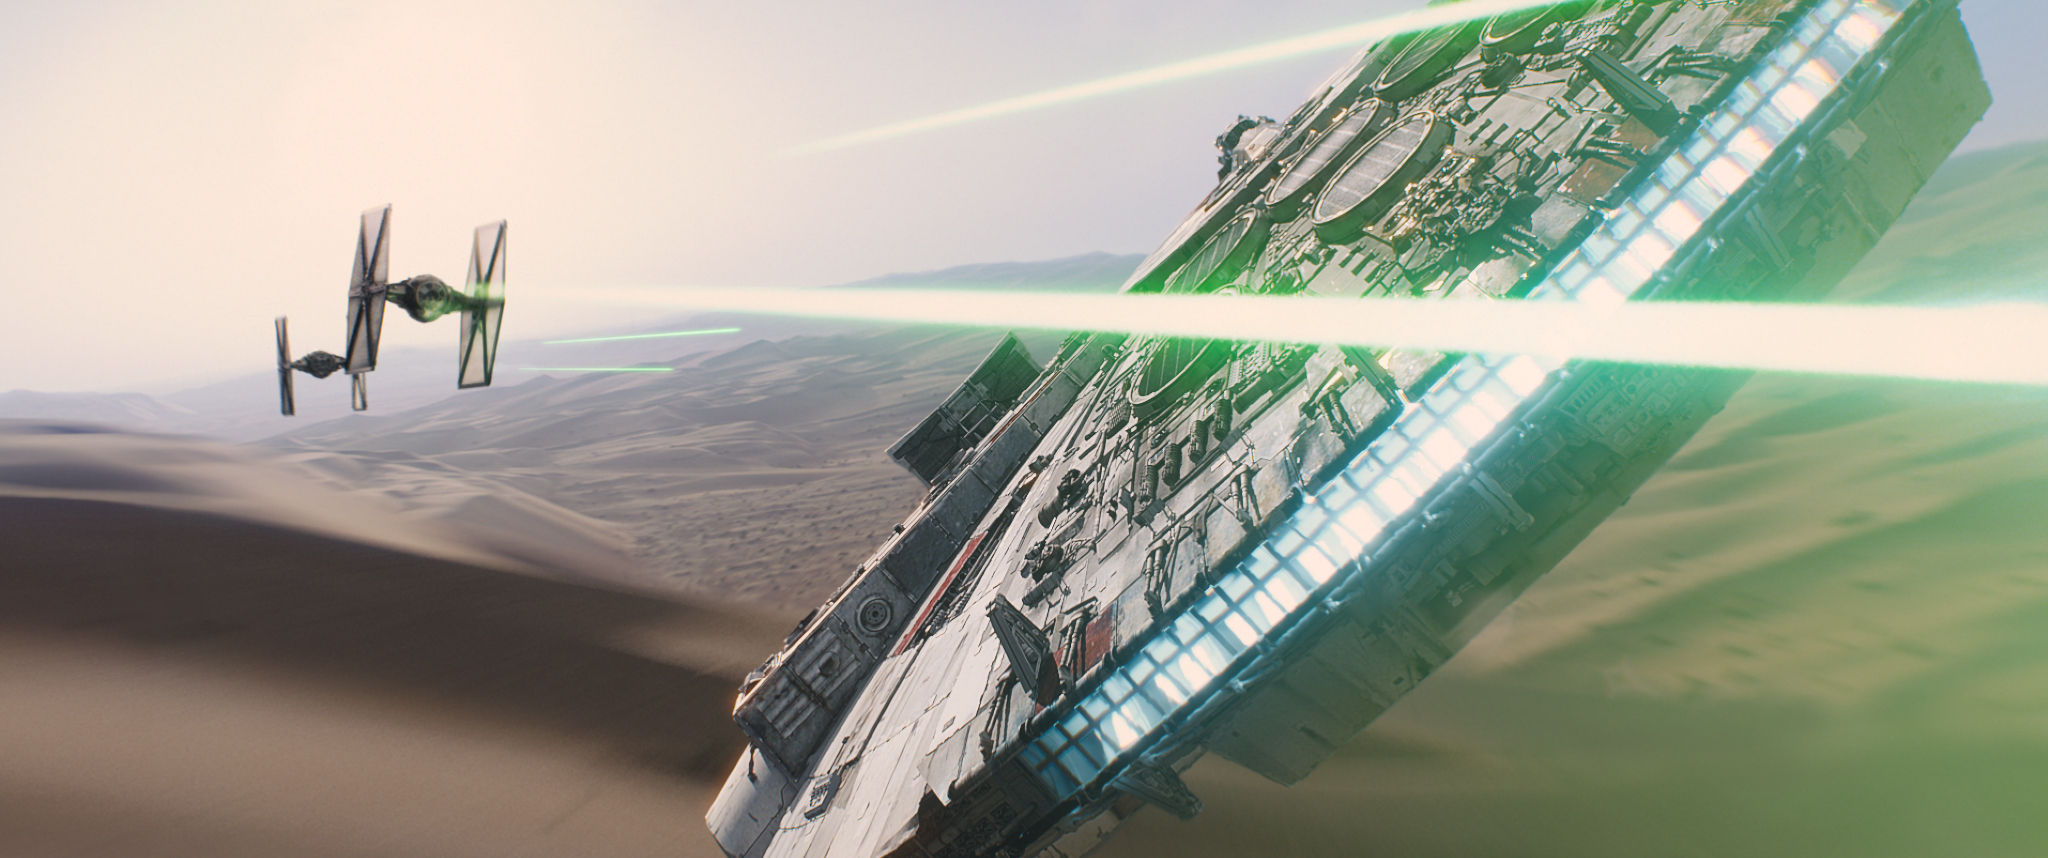 First Star Wars: The Force Awakens Trailer Teases Something Special